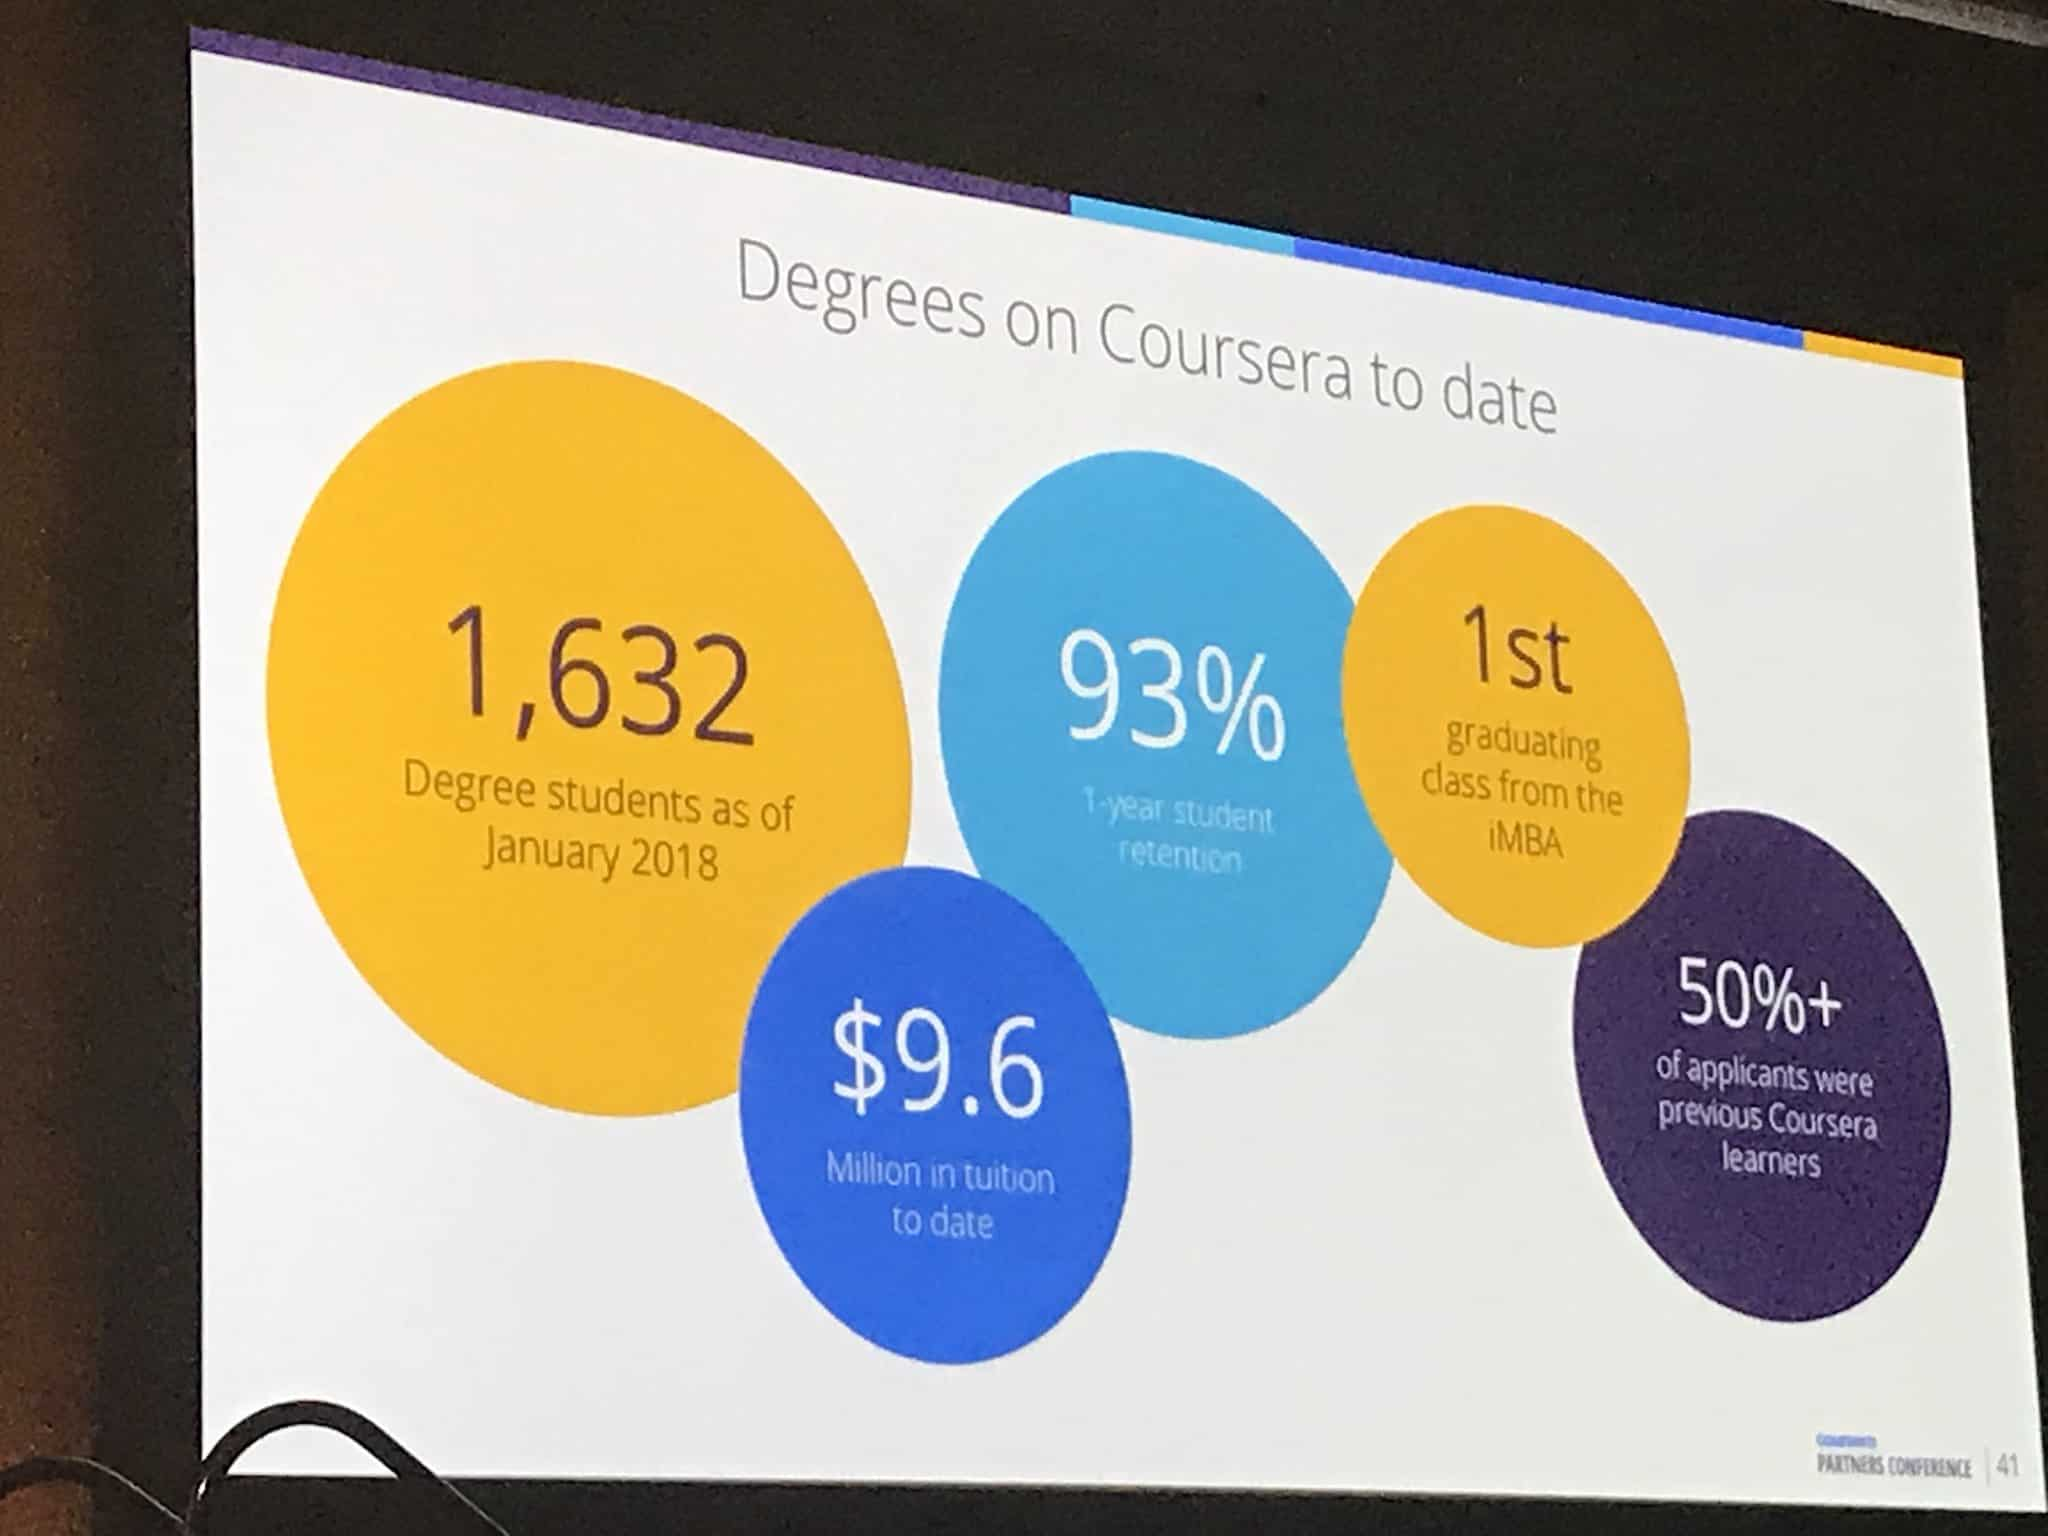 Coursera Launches Six New Degrees Including a Bachelors Degree